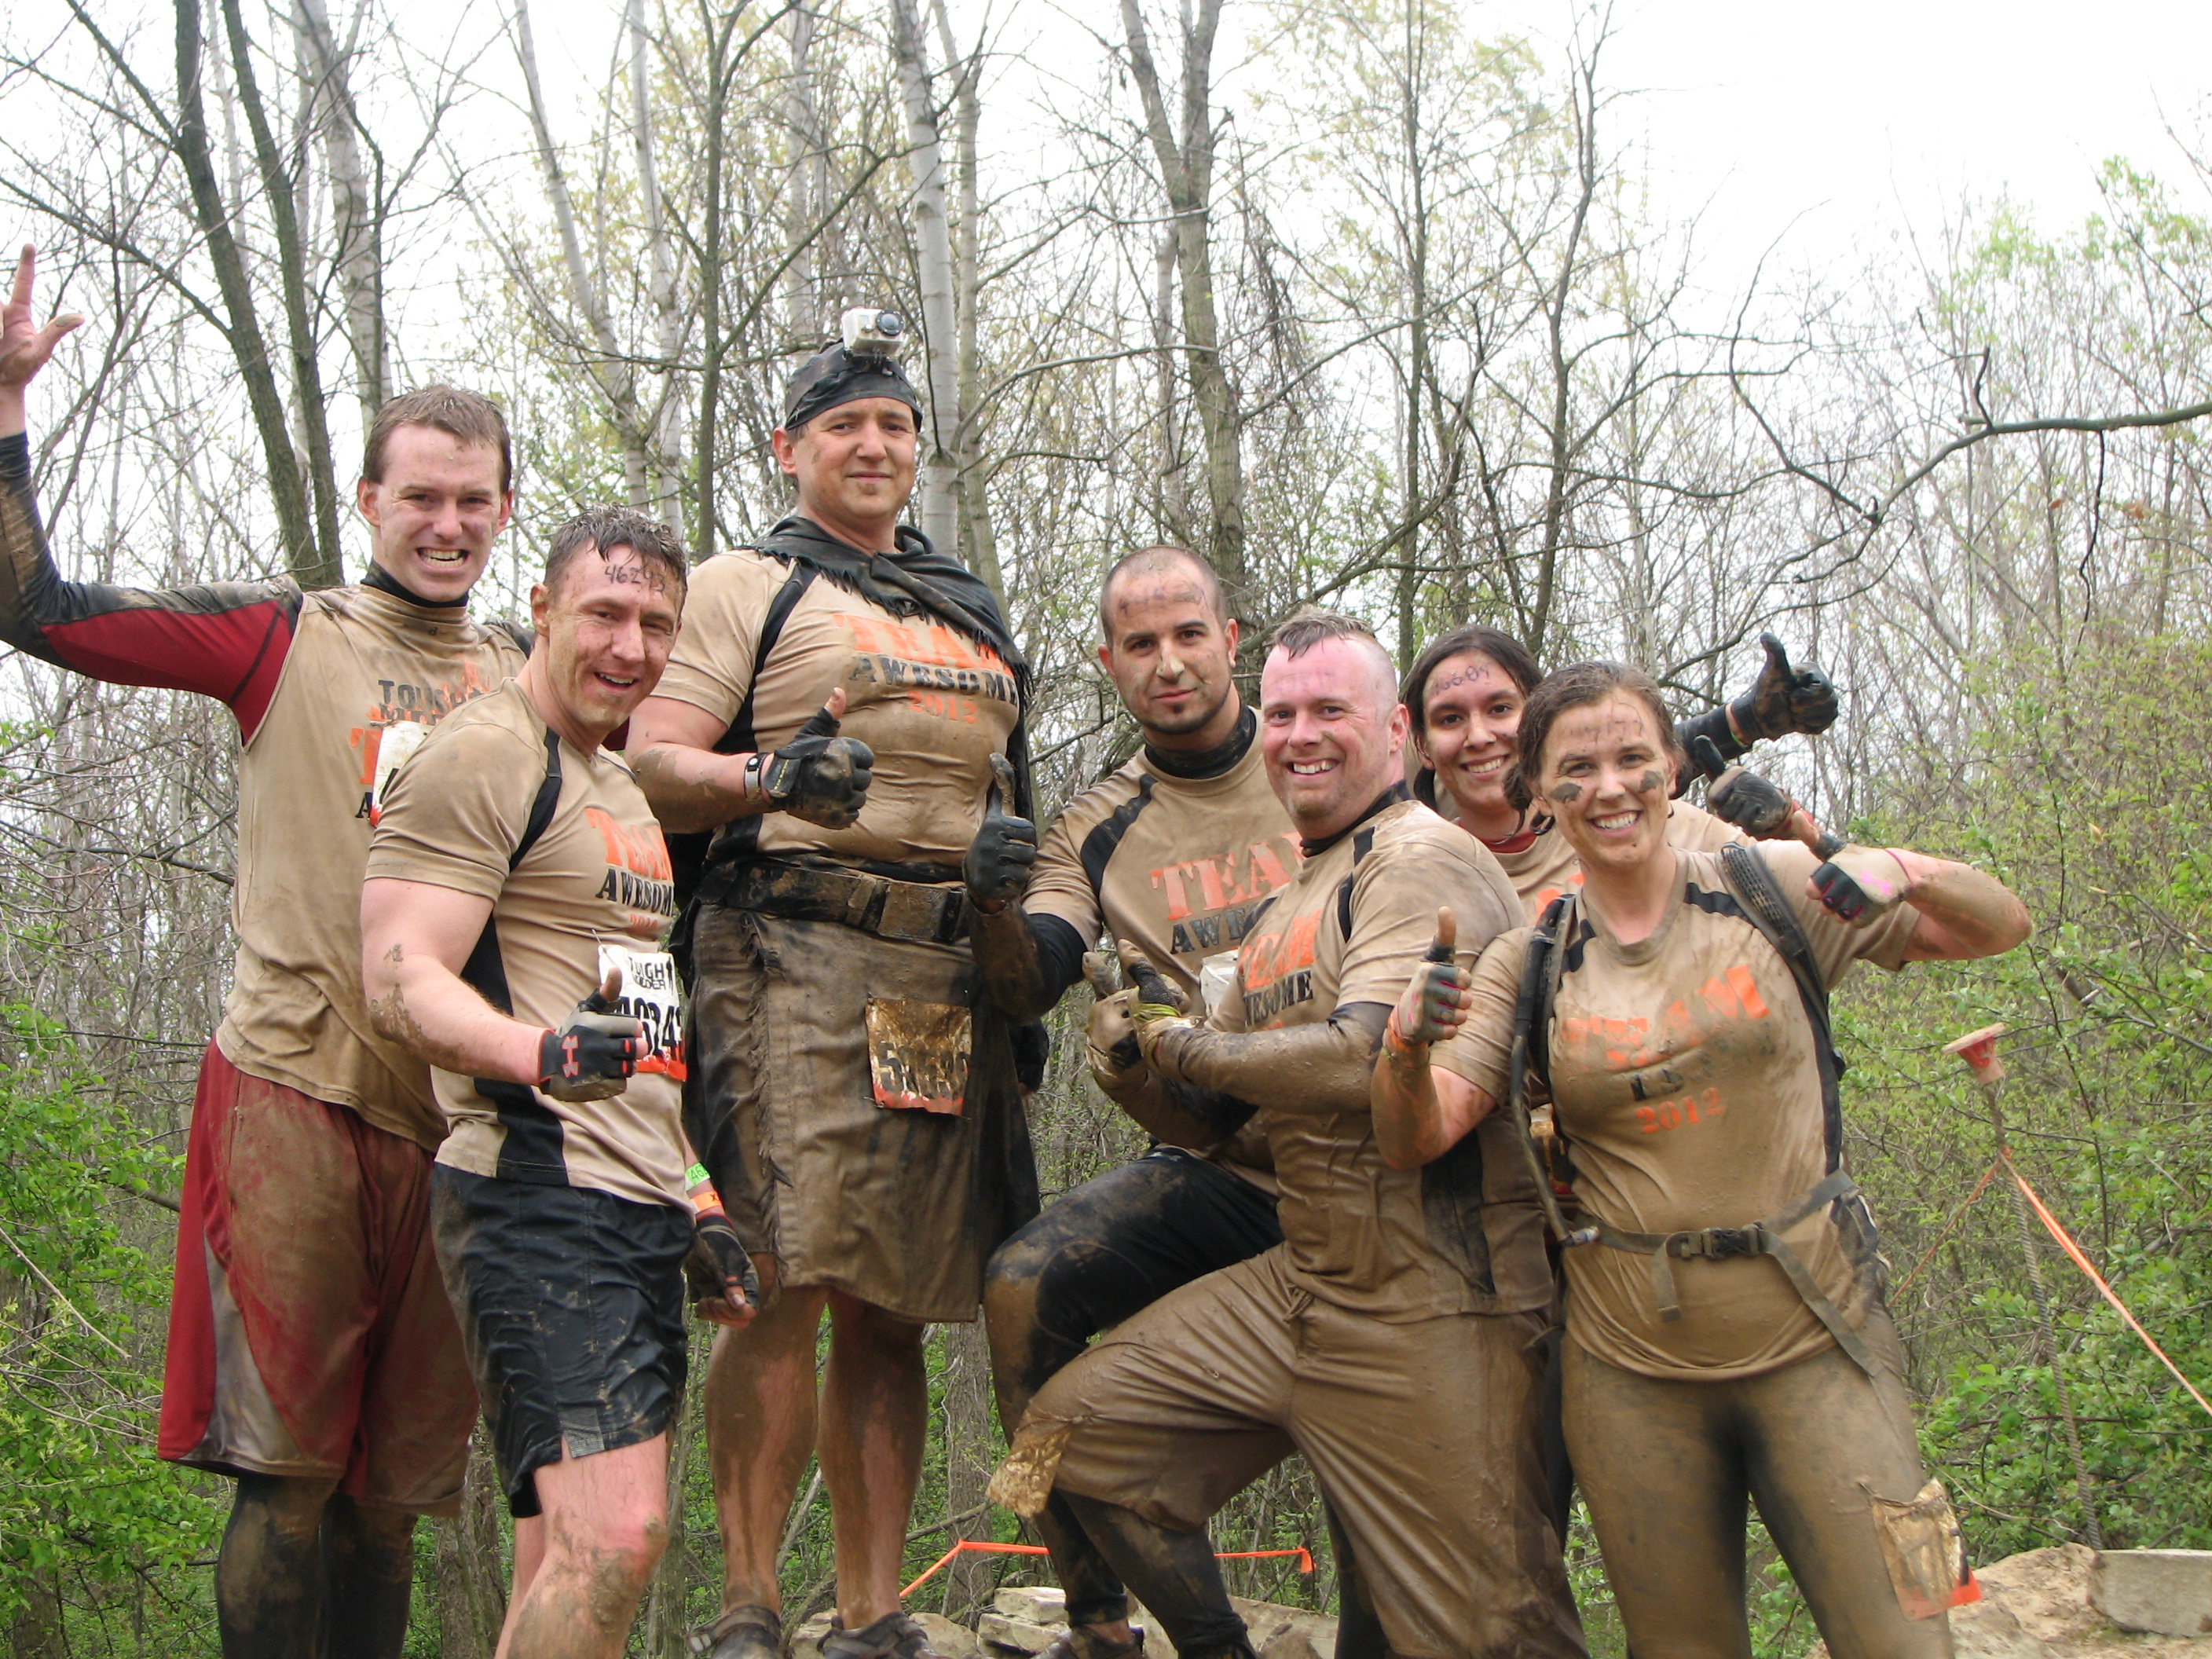 Design your own t shirt military - On Top Of The World At The Michigan 2012 Tough Mudder T Shirt Photo